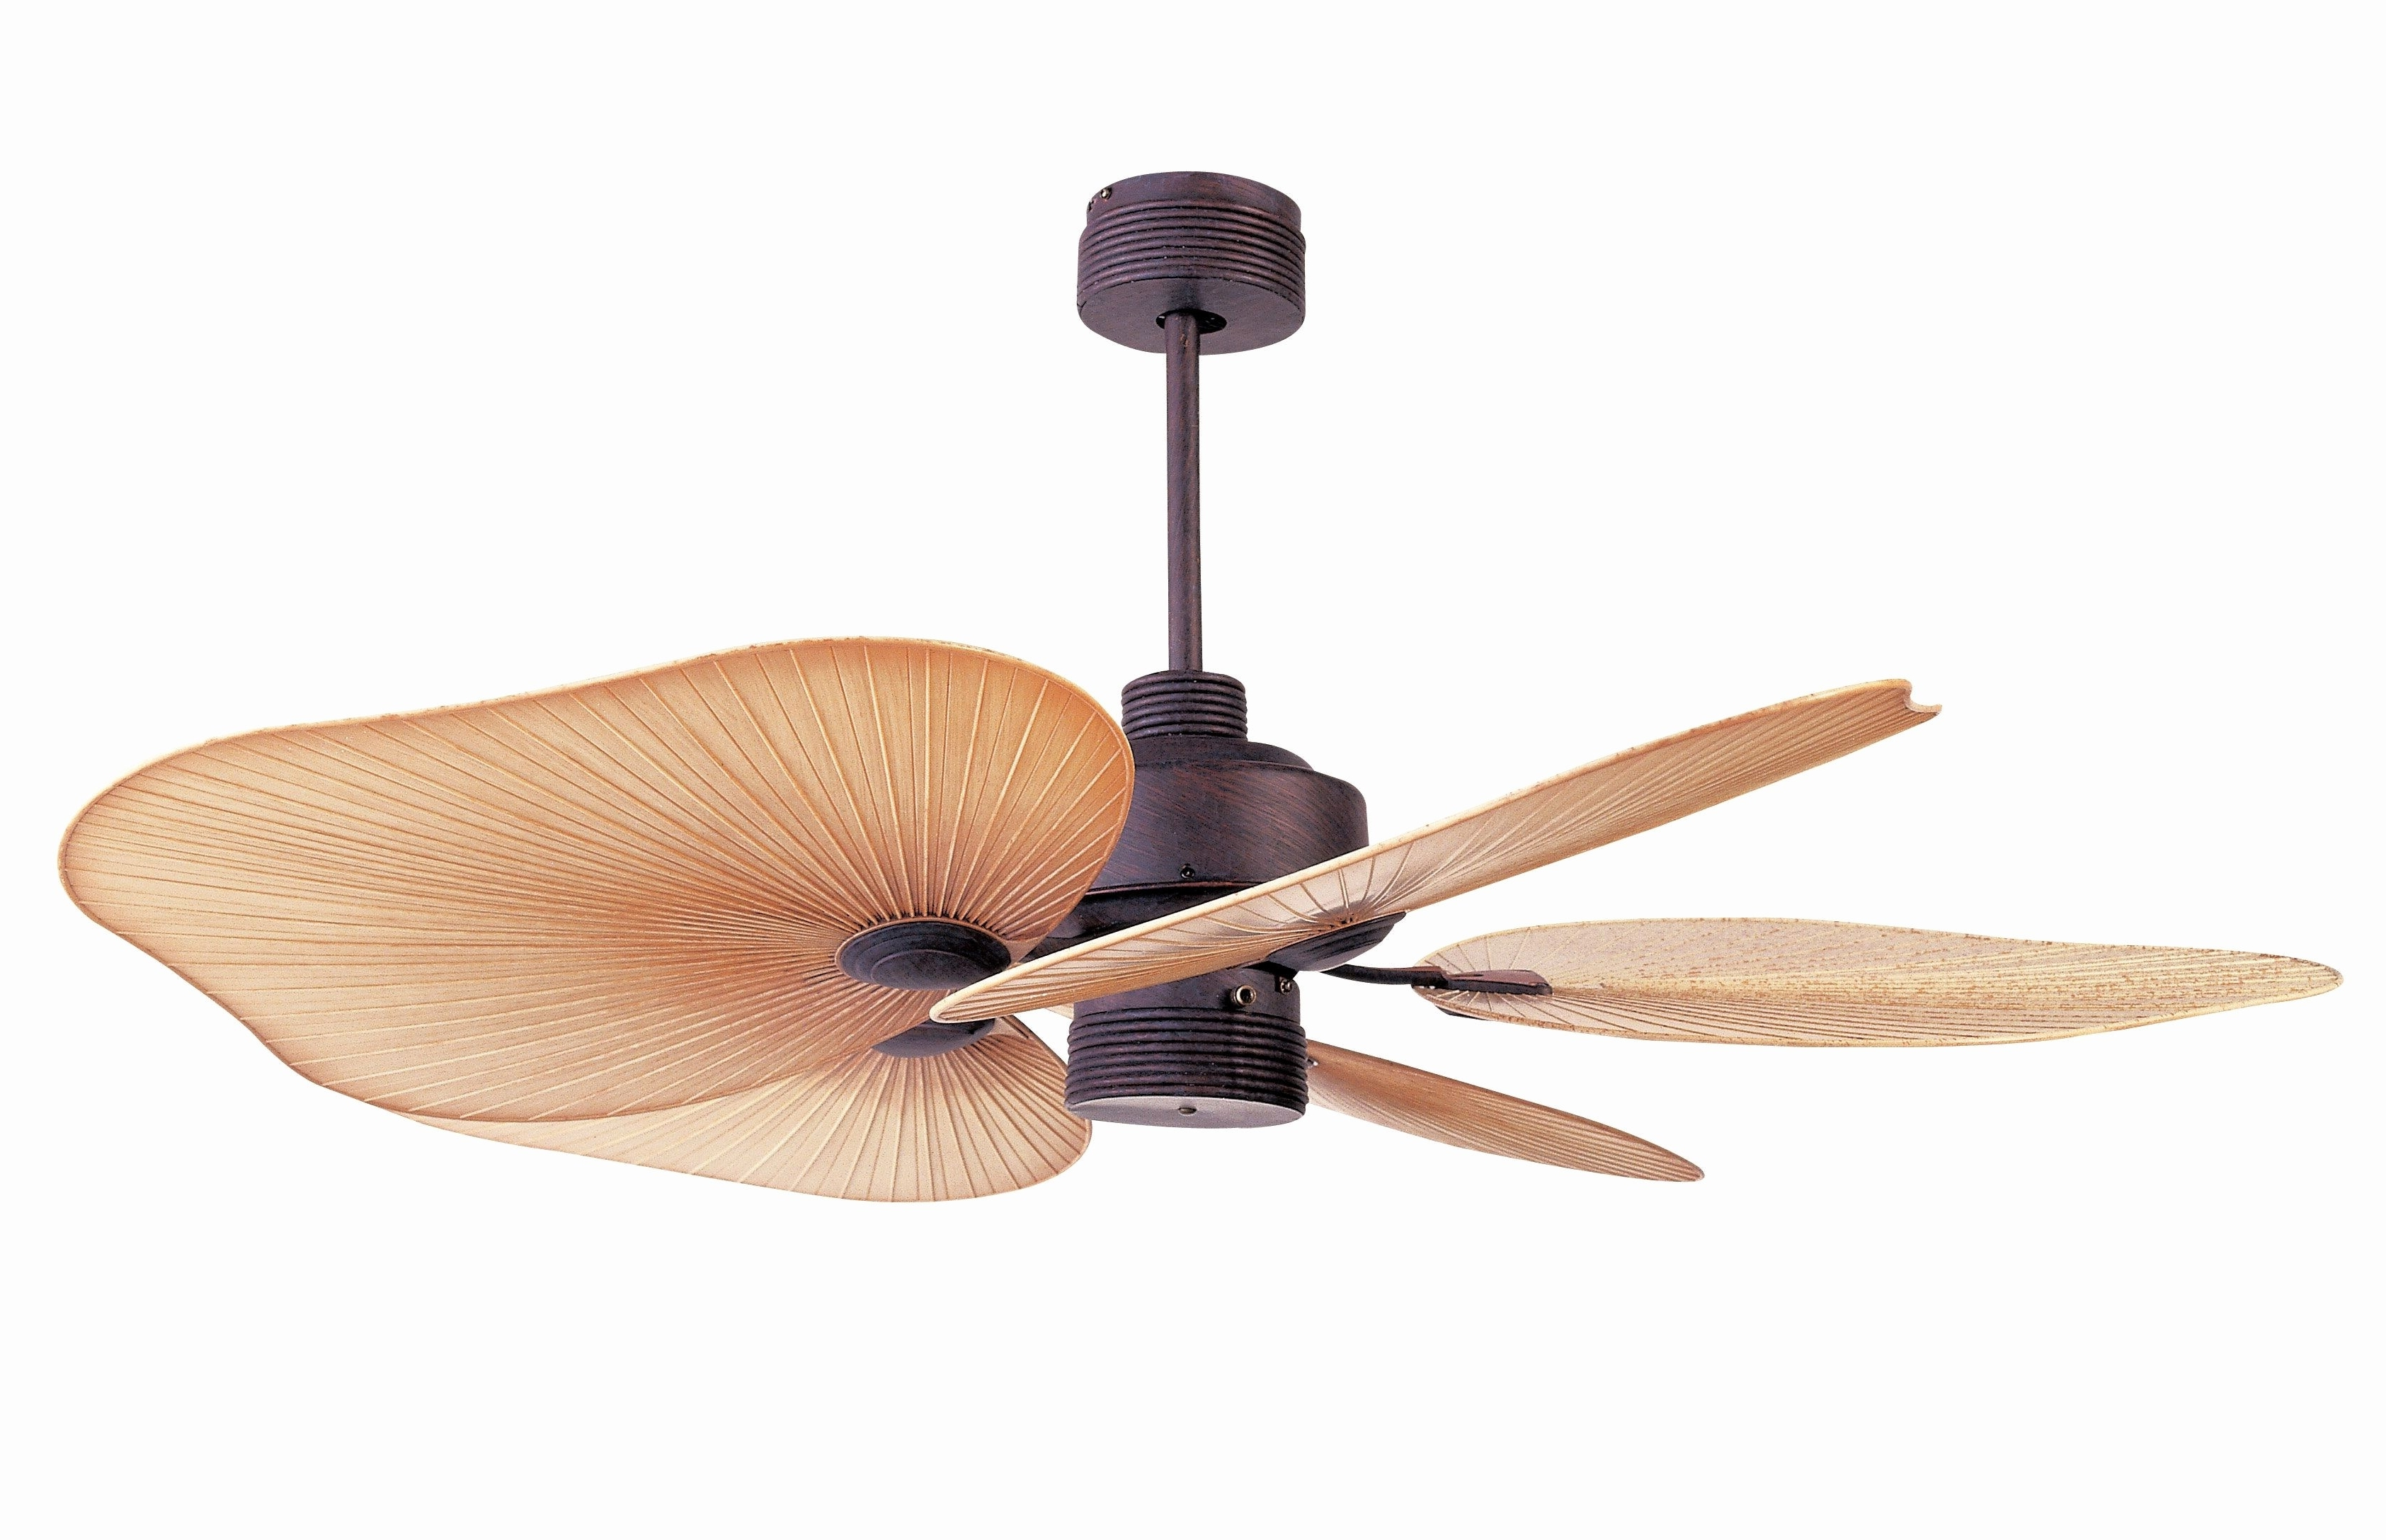 Popular Outdoor Ceiling Fans For Barns Intended For White Barn Ceiling Fans Luxury Tropical Ceiling Fans Ideas Barn (View 4 of 20)